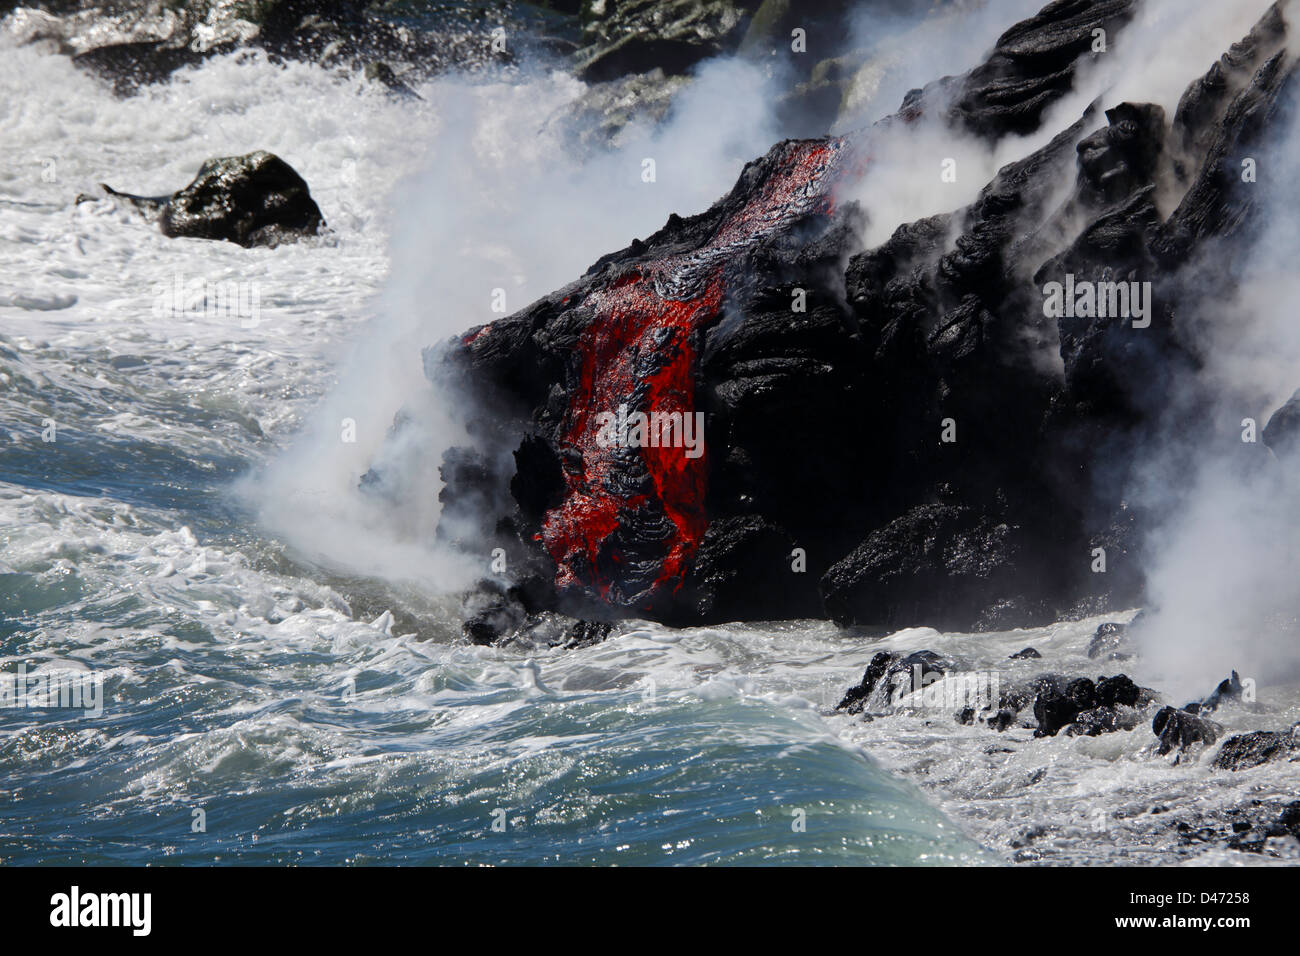 The Pahoehoe lava flowing from Kilauea has reached the Pacific ocean near Kalapana, Big Island, Hawaii. Stock Photo